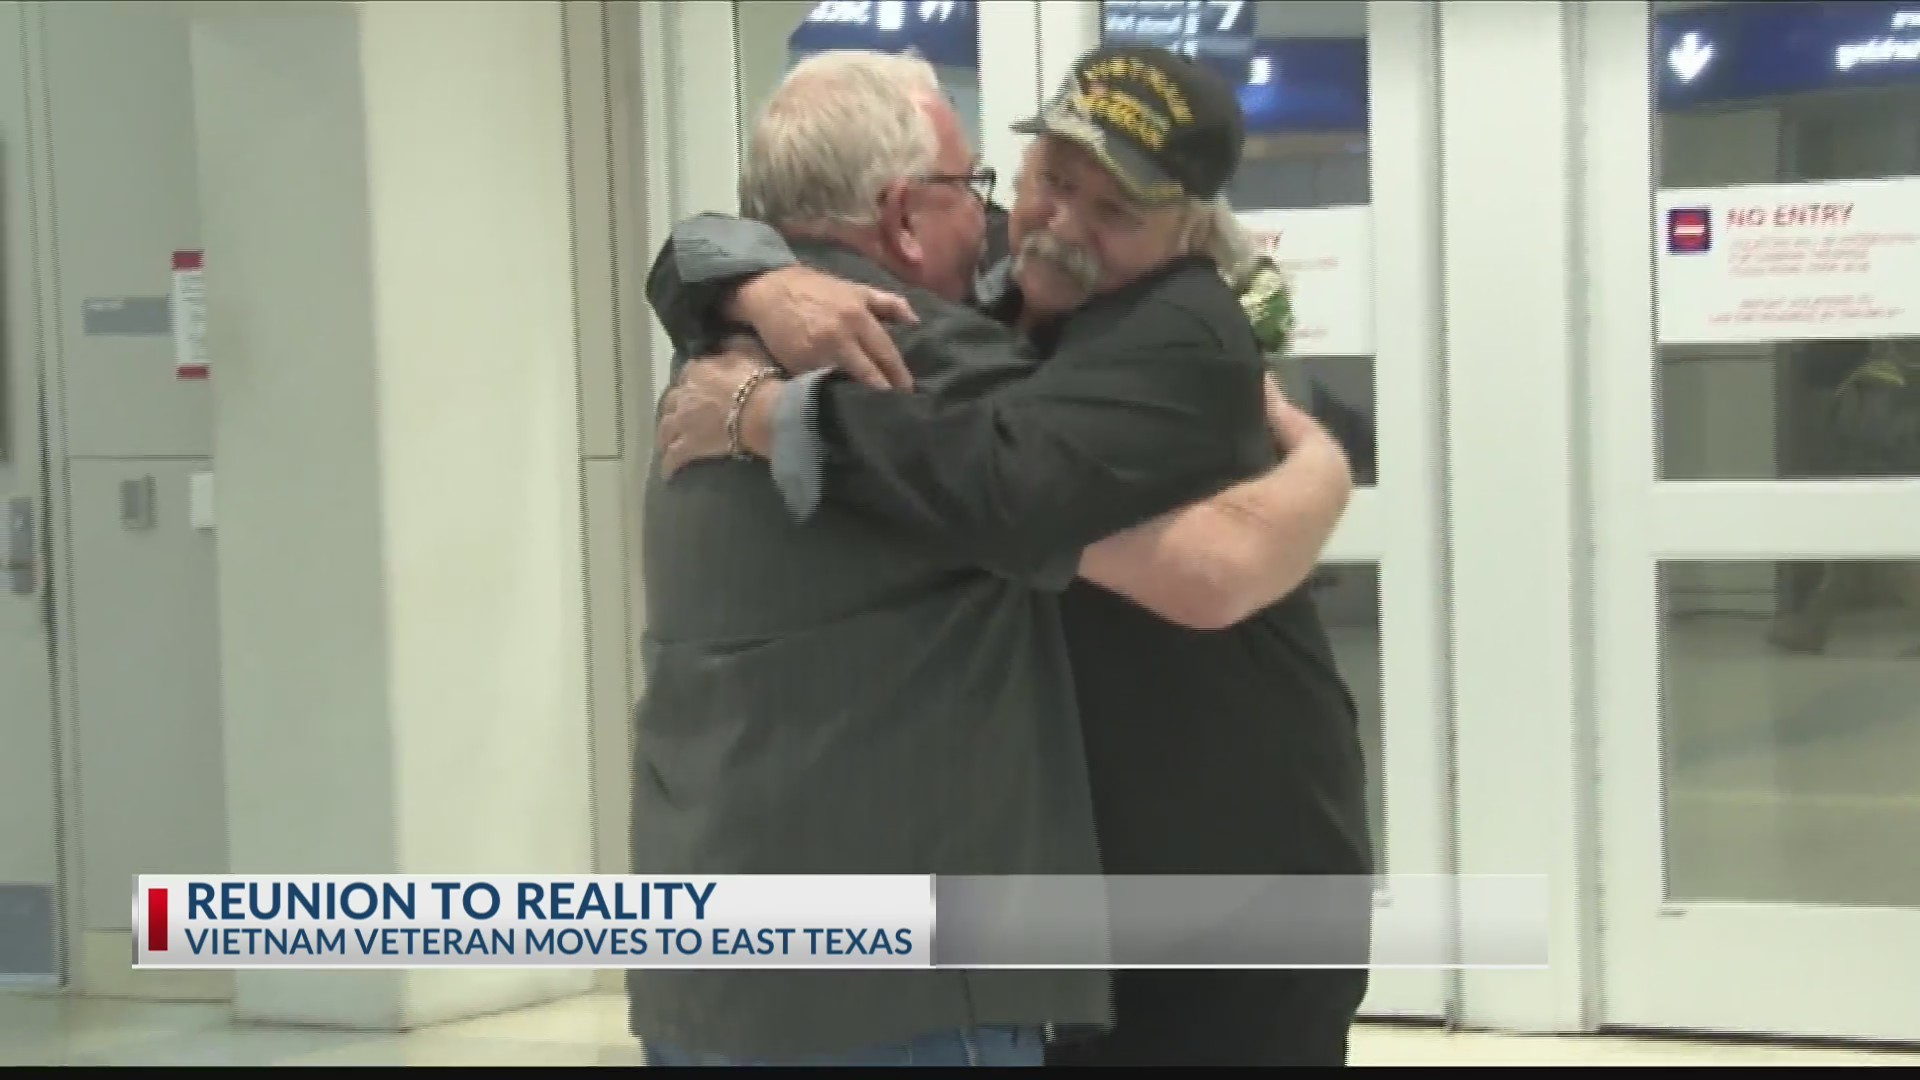 REUNION_TO_REALITY__Veterans_reunited_af_1_20190330031844-3156084